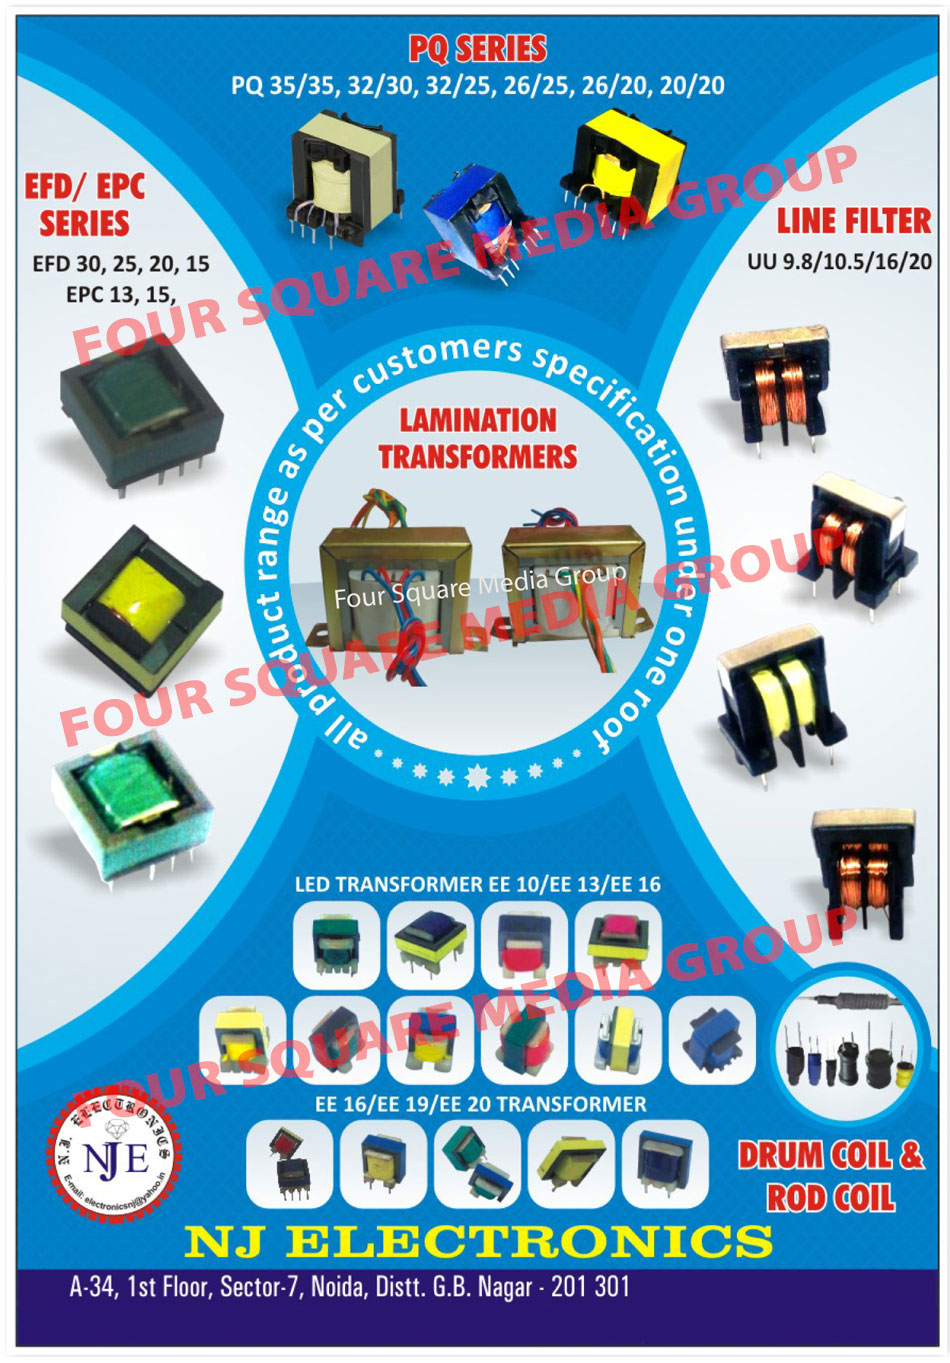 LED Drivers, SMPS Transformers, Choke Coils, CFL Choke Coils, CFL Toroidal, Toroidal Coils, Drum Coil Inductor, Power Choke, Line Filters, Customized Products, LED Transformers, LED Drivers, SMPS Transformers, Choke Coils, CFL Choke Coils, CFL Toroidal, Toroidal Coils, Drum Coil Inductor, Power Choke, Coils, Led Bulbs, Drum Coil, Rod Coil, EFD Series Transformer, EPC Series Transformers, EE Transformers, Lamination Transformers, PQ Series Transformers